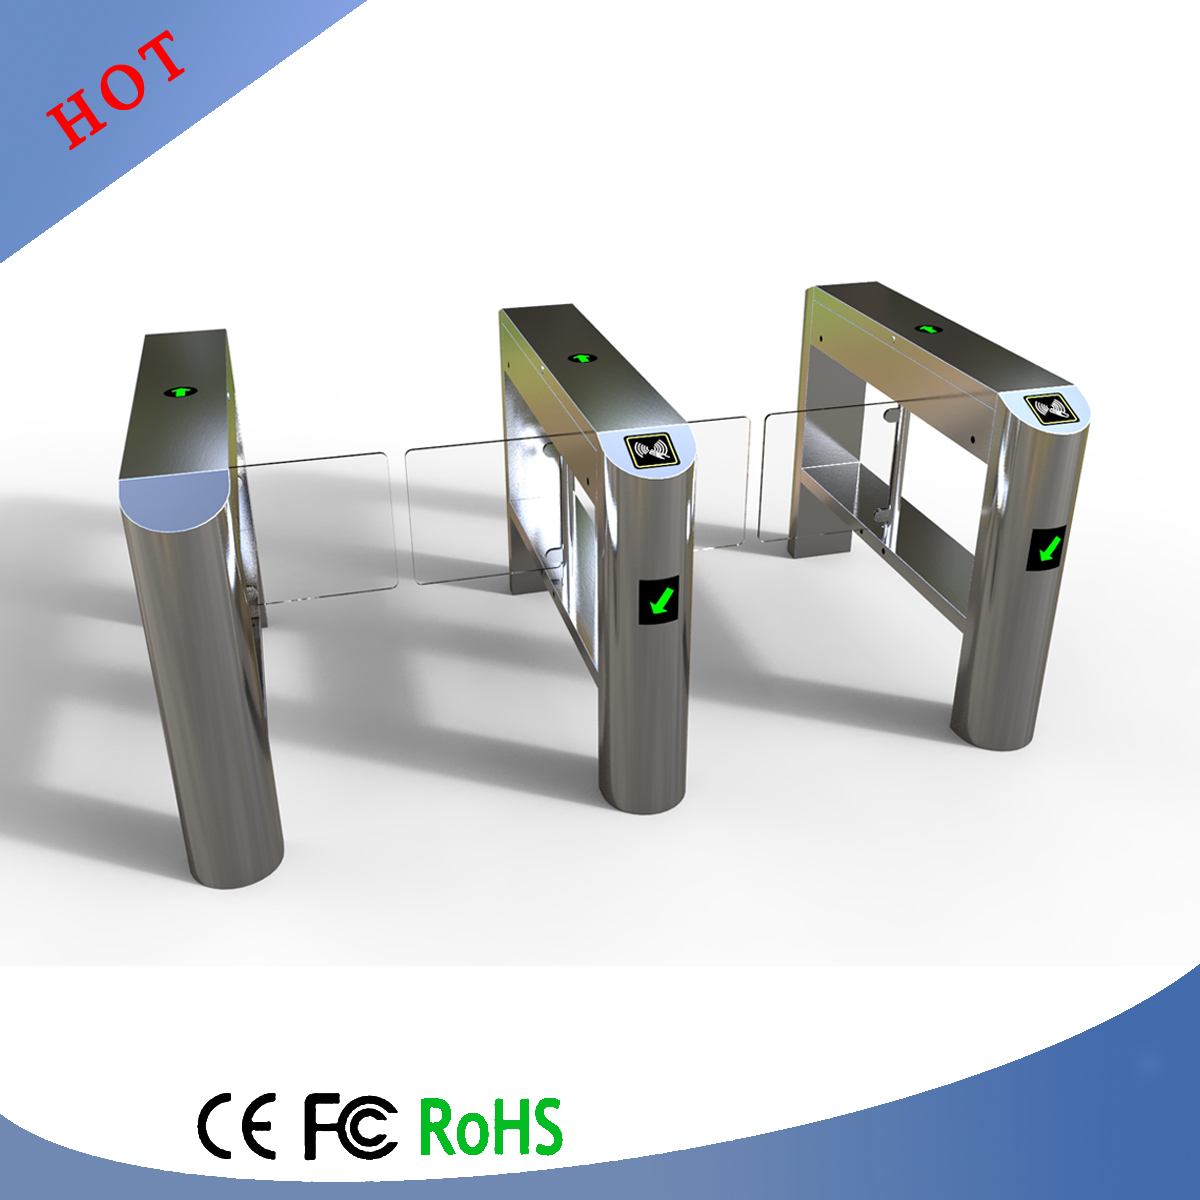 compact automatic systems turnstiles for school access control